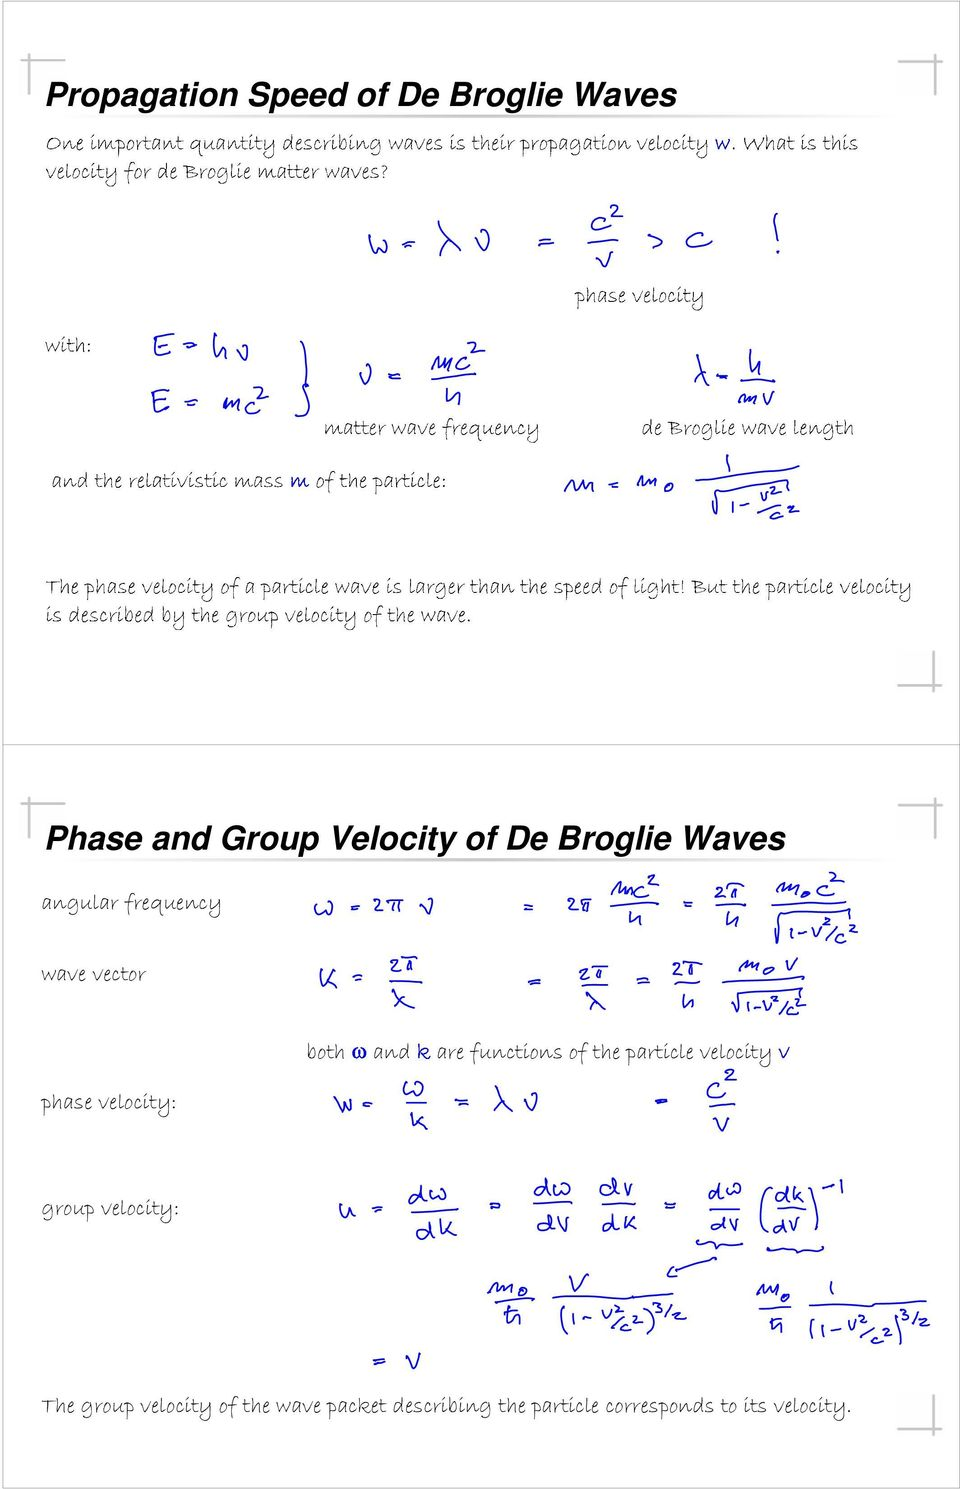 are functions of the particle velocity group velocity: The group